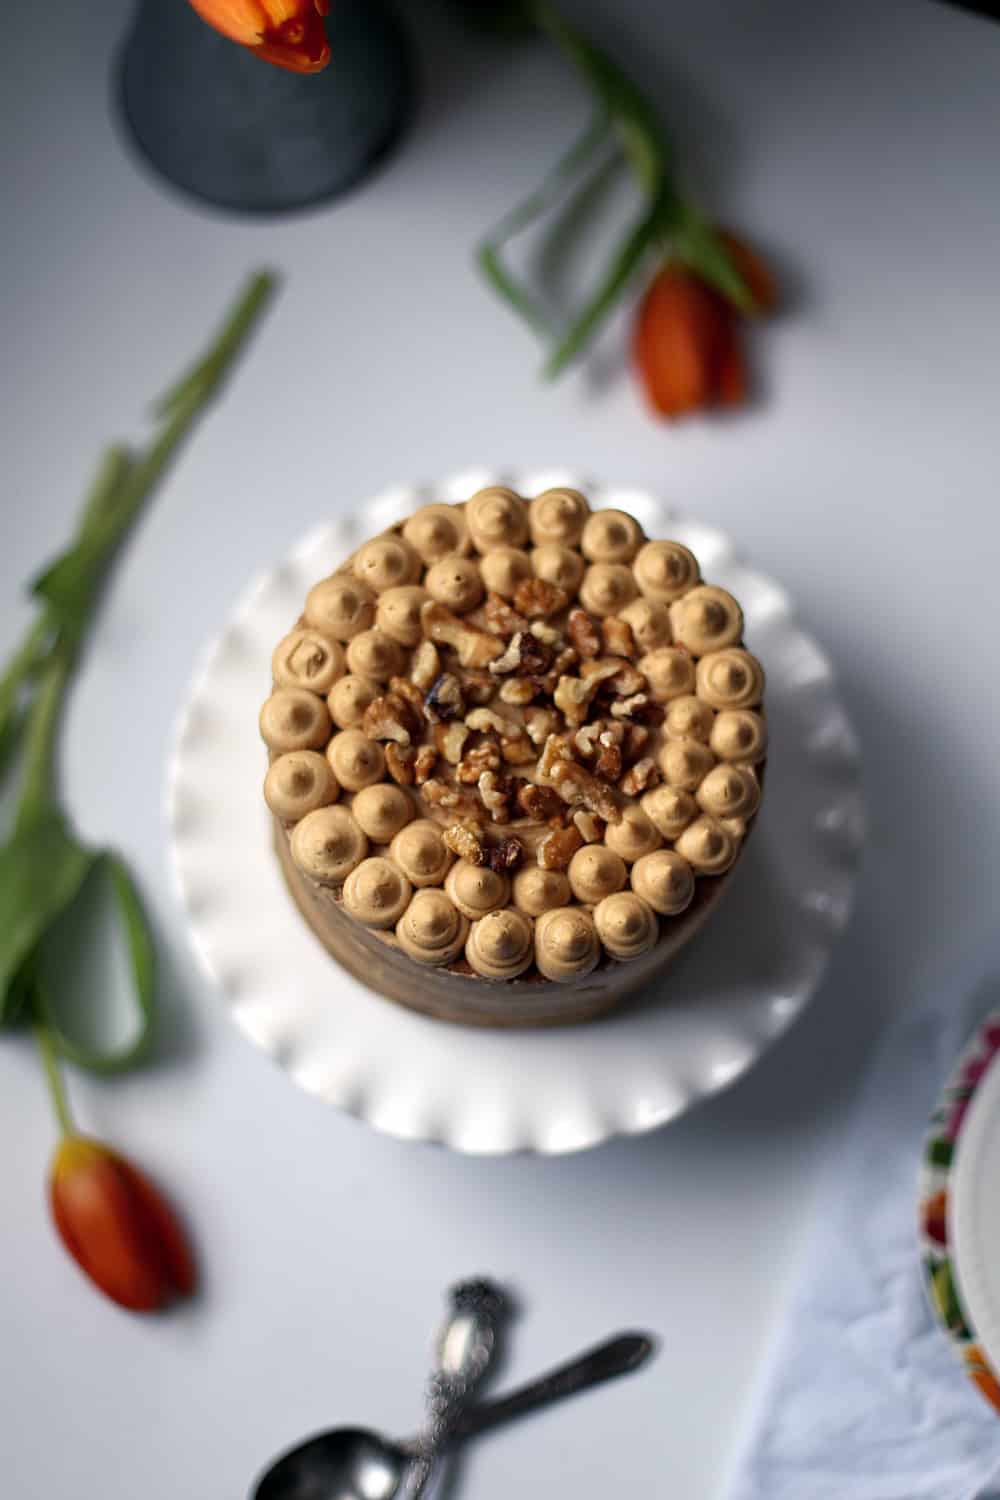 A coffee walnut cake frosted topped with walnuts.